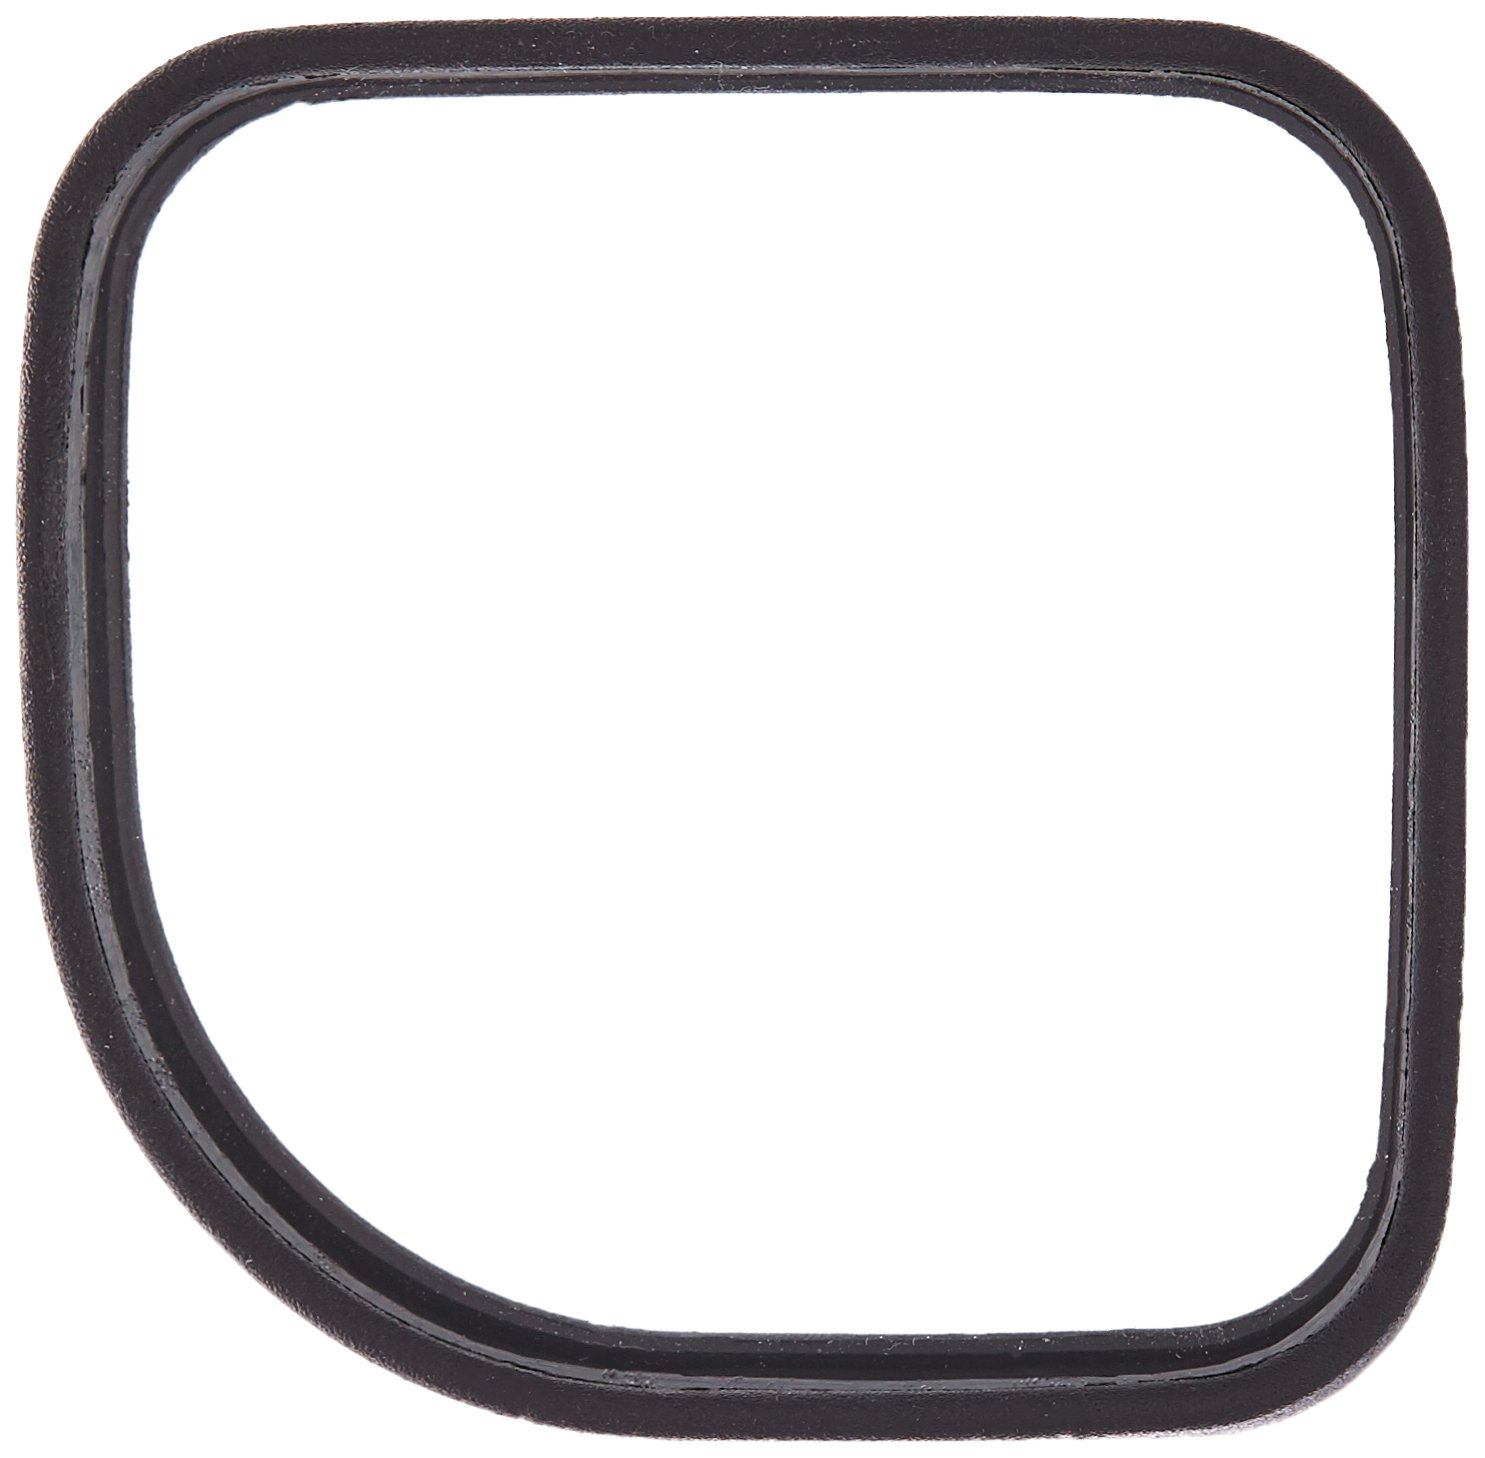 CIPA 49404 2'x 2' Corner Wedge Stick-On'